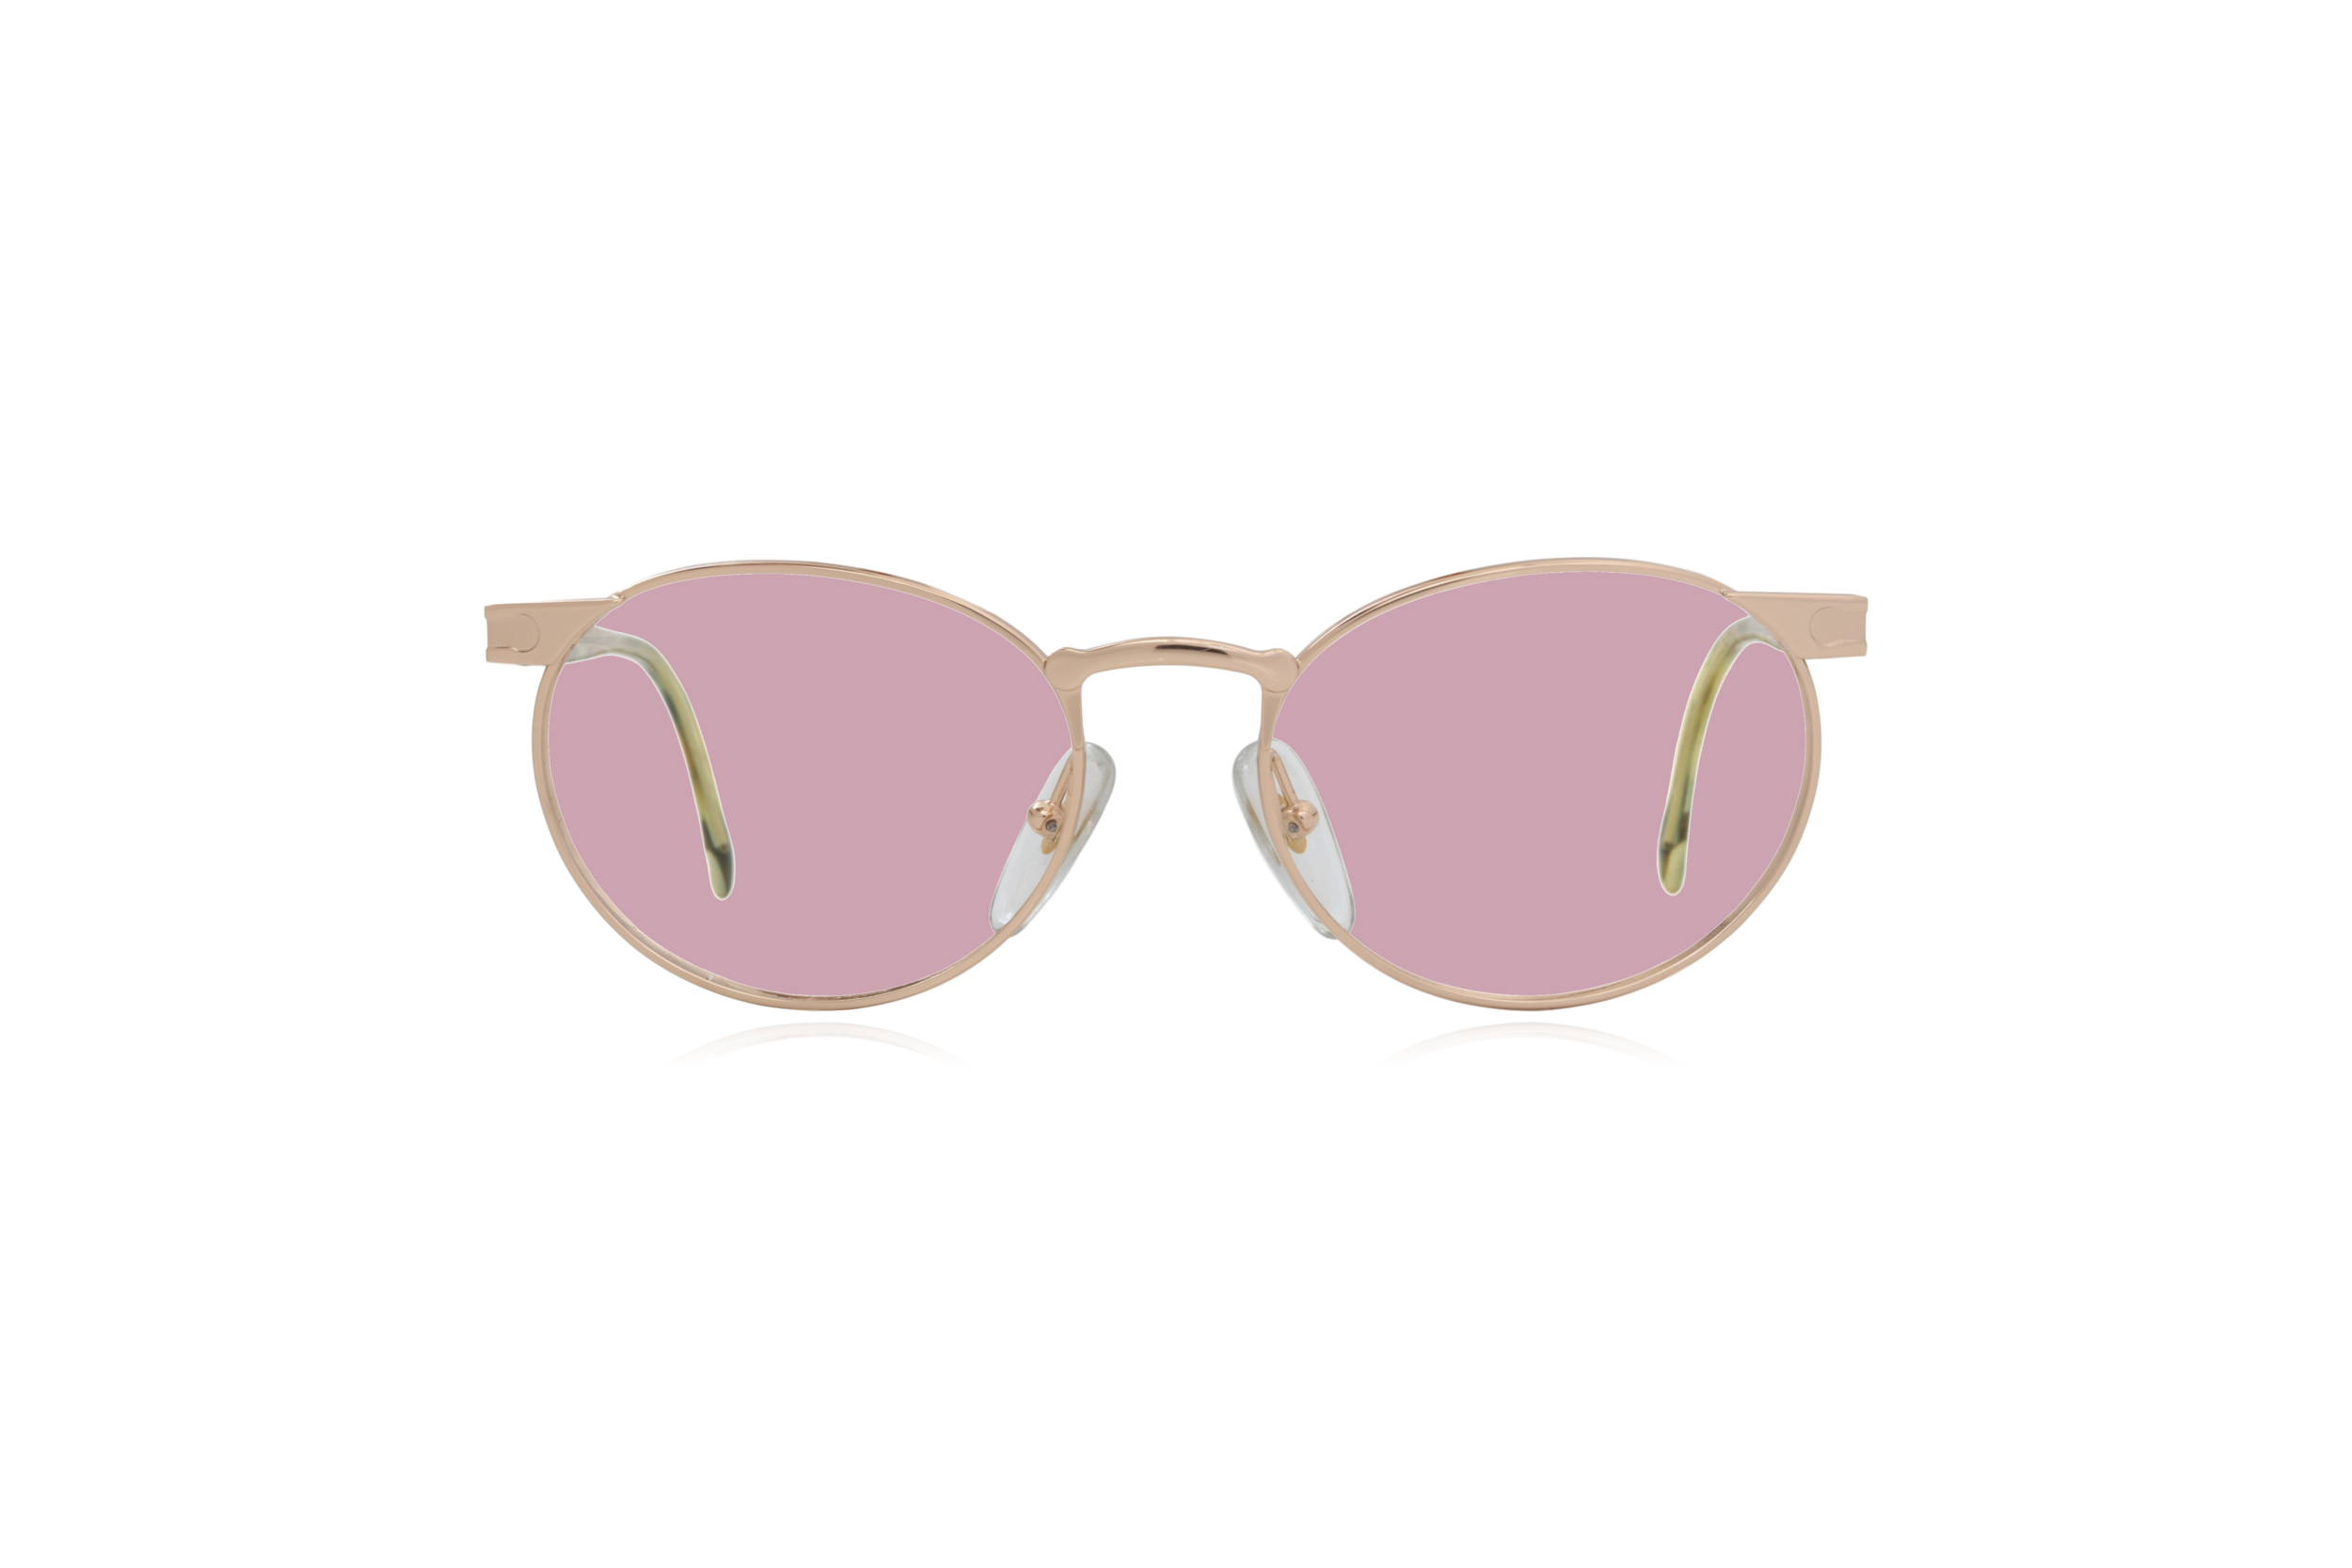 Peep Eyewear, Vintage Glasses, Hugo Boss 5131, Carrera, Pink Lenses.png